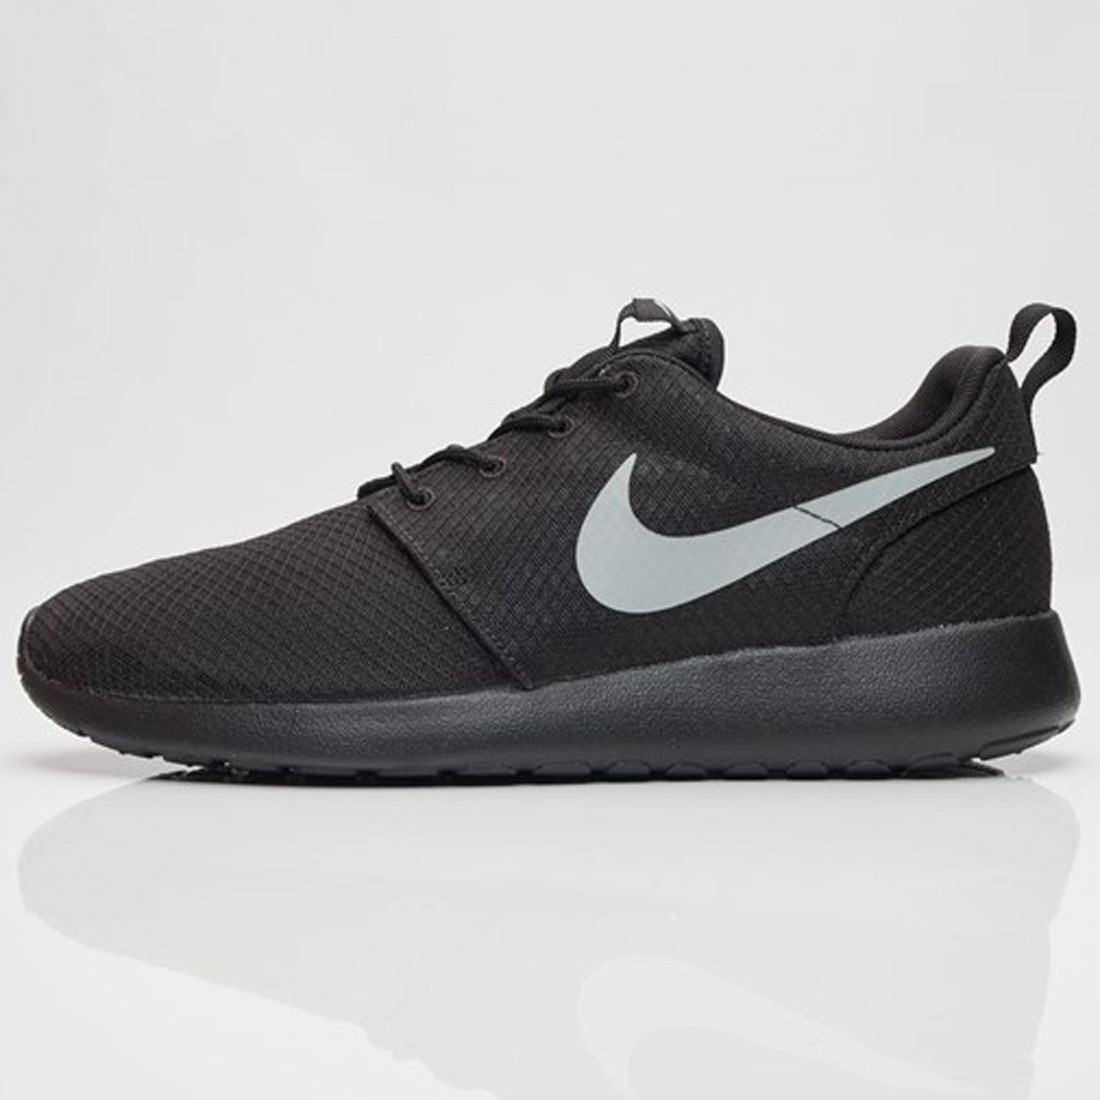 082cb07b795c6 Nike Roshe One Sports Shoes (Black) - Men s Footwear